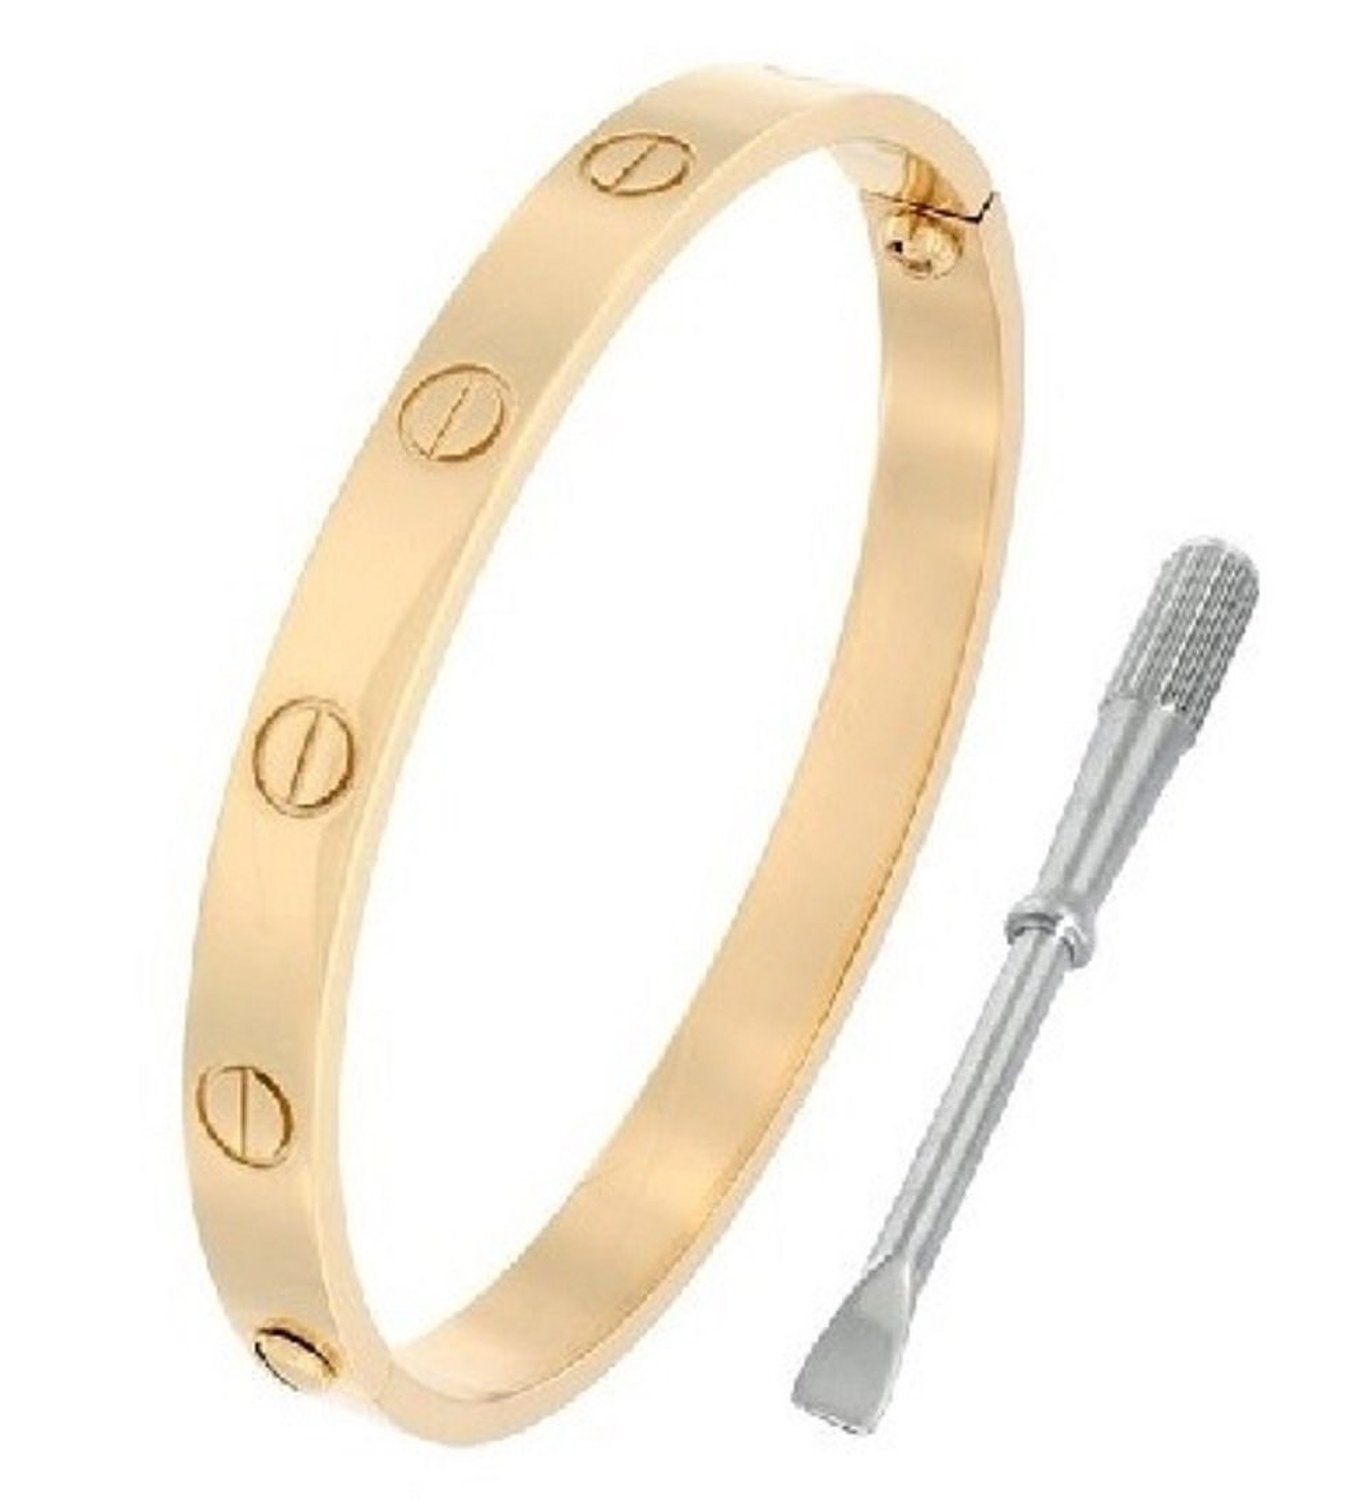 bangles for bangle arrow armband women iwisb noeud products plated screw bracelet gold bracelets manchette enfashion cuff